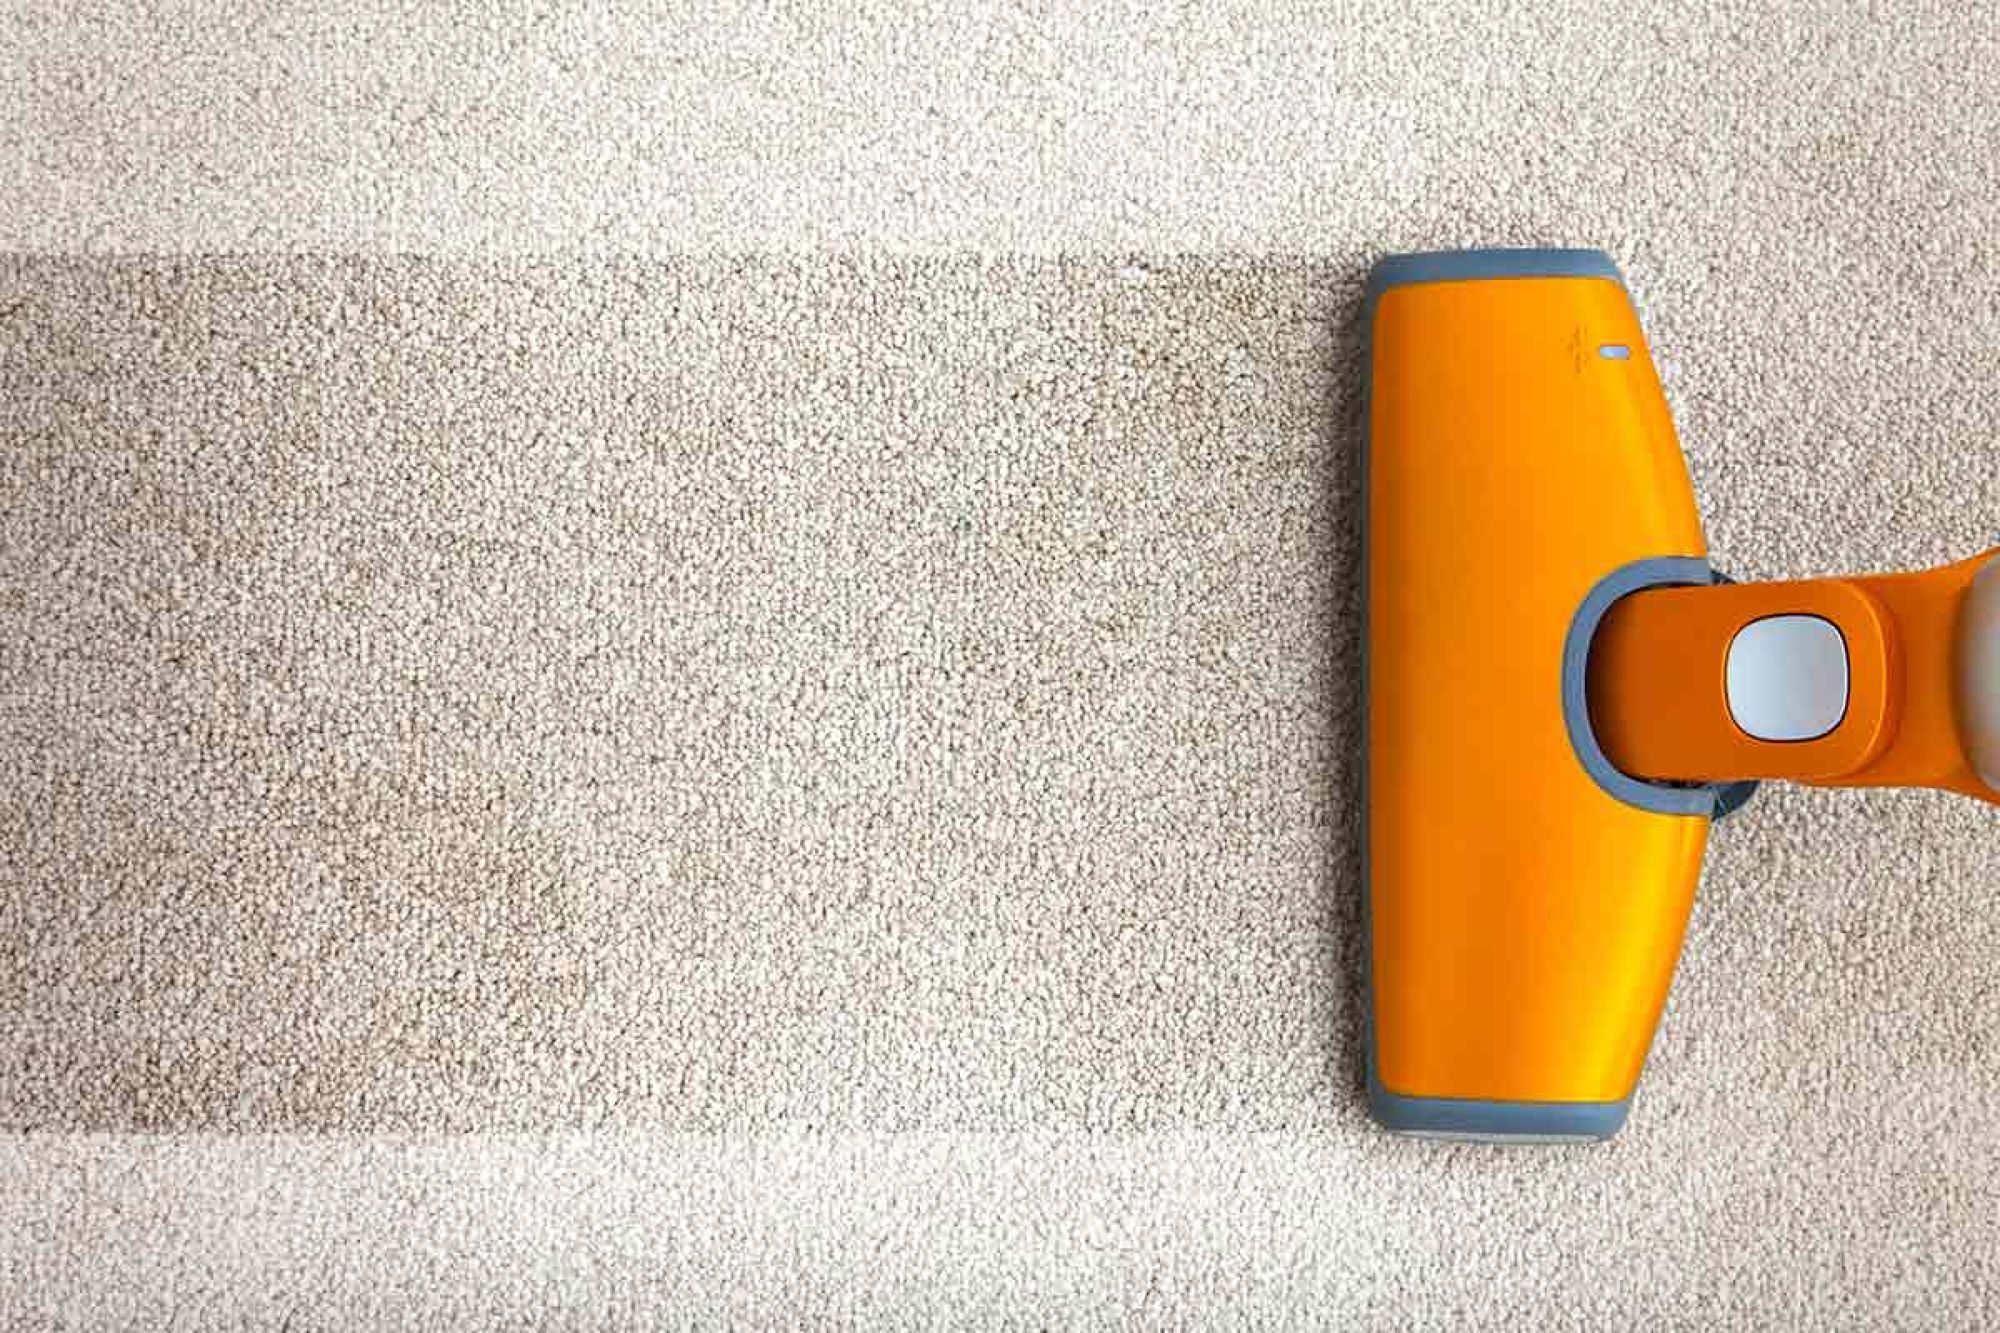 Carpet Cleaning: Hire a Professional or DIY?